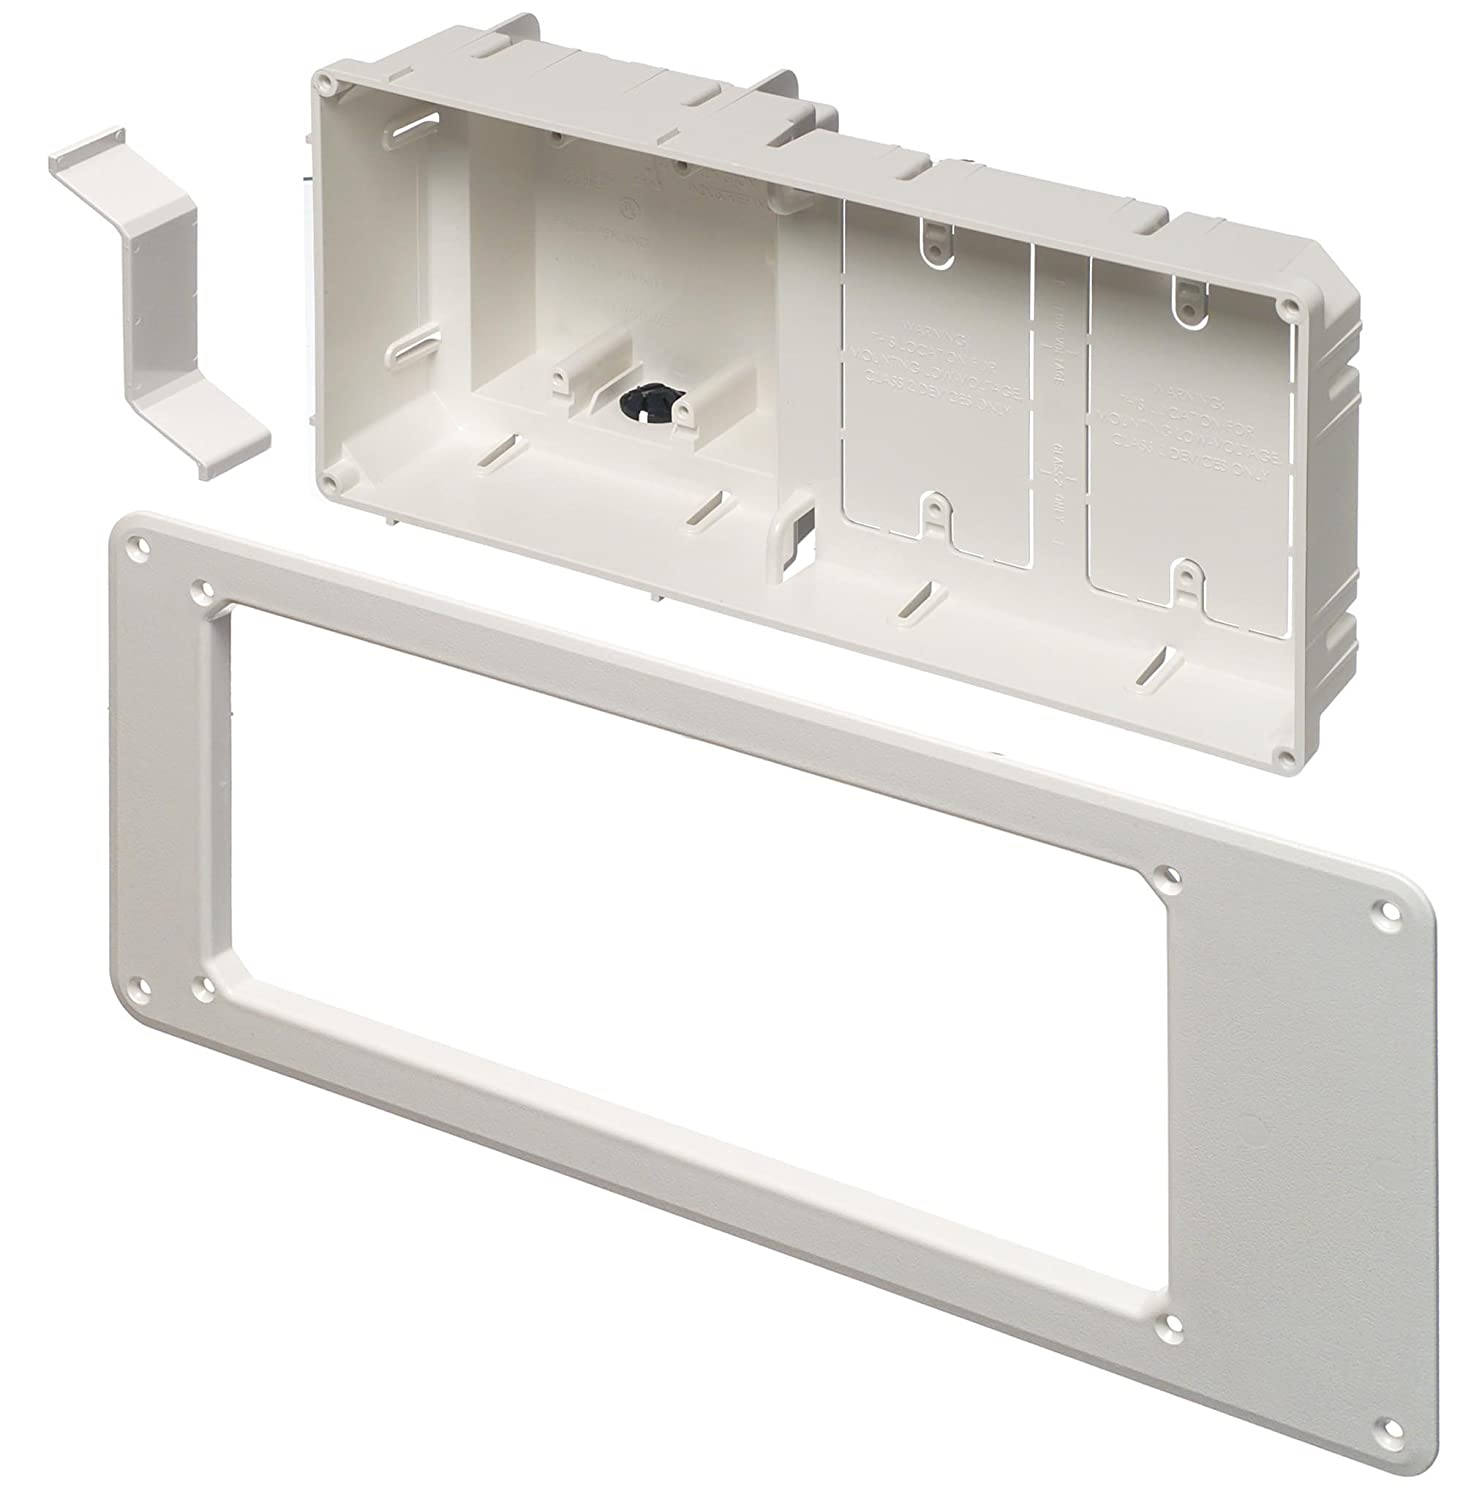 Arlington Tvb613 1 Recessed Tv Outlet Box With Paintable Wiring New Trim Plate White 4 Gang Home Improvement